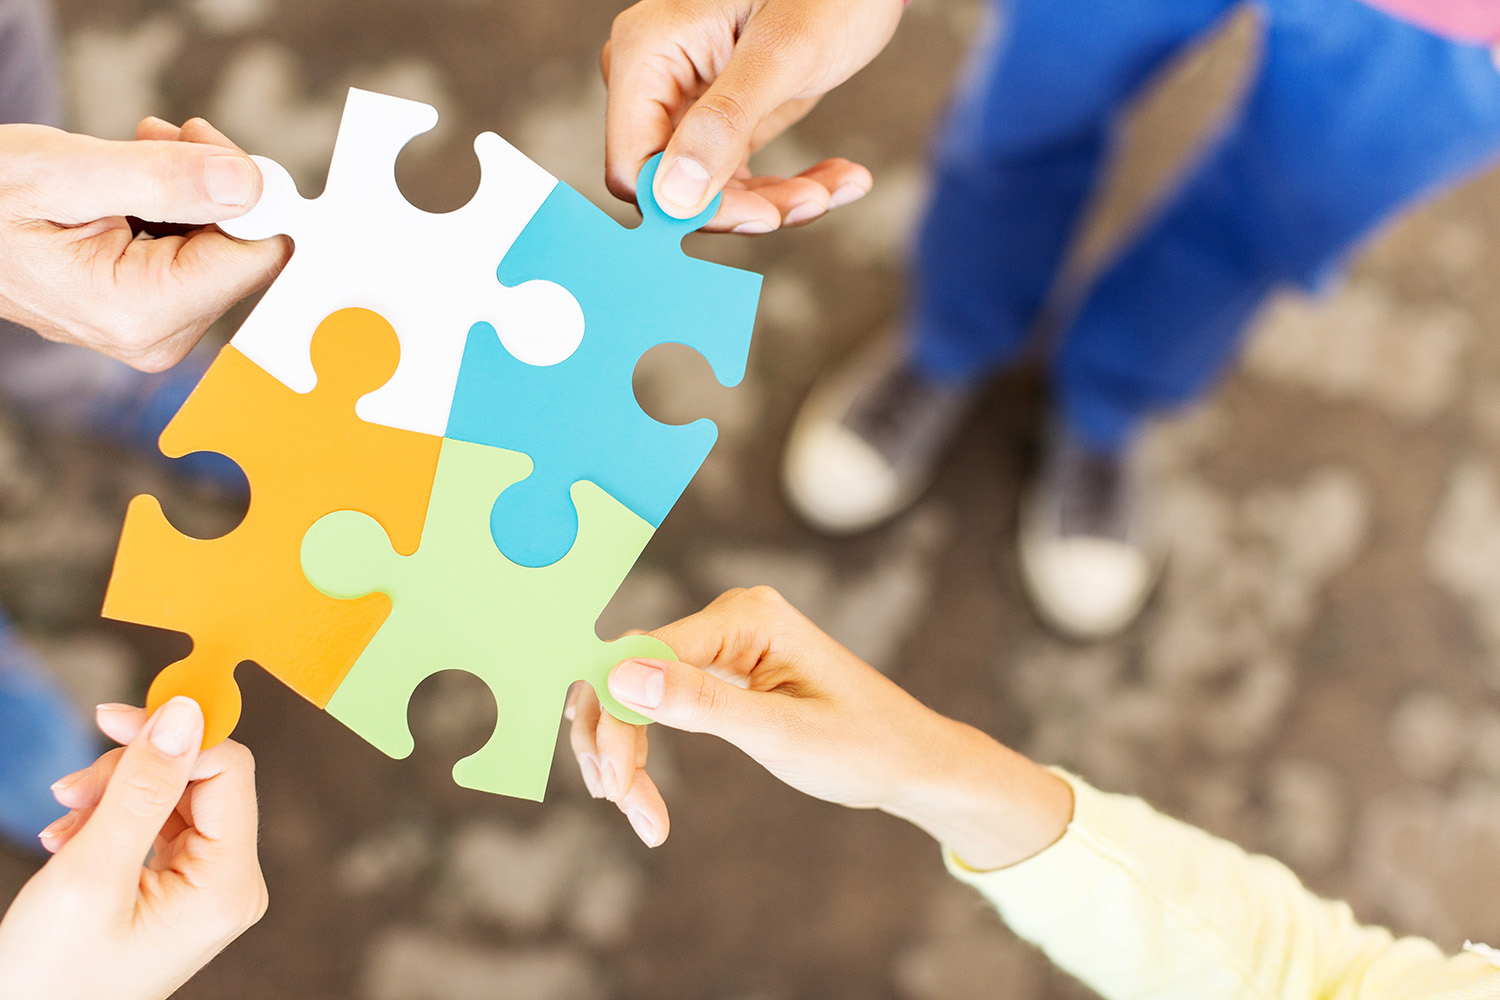 Business-People-Joining-Jigsaw-Pieces-508075657_5760x3840 (1).jpg